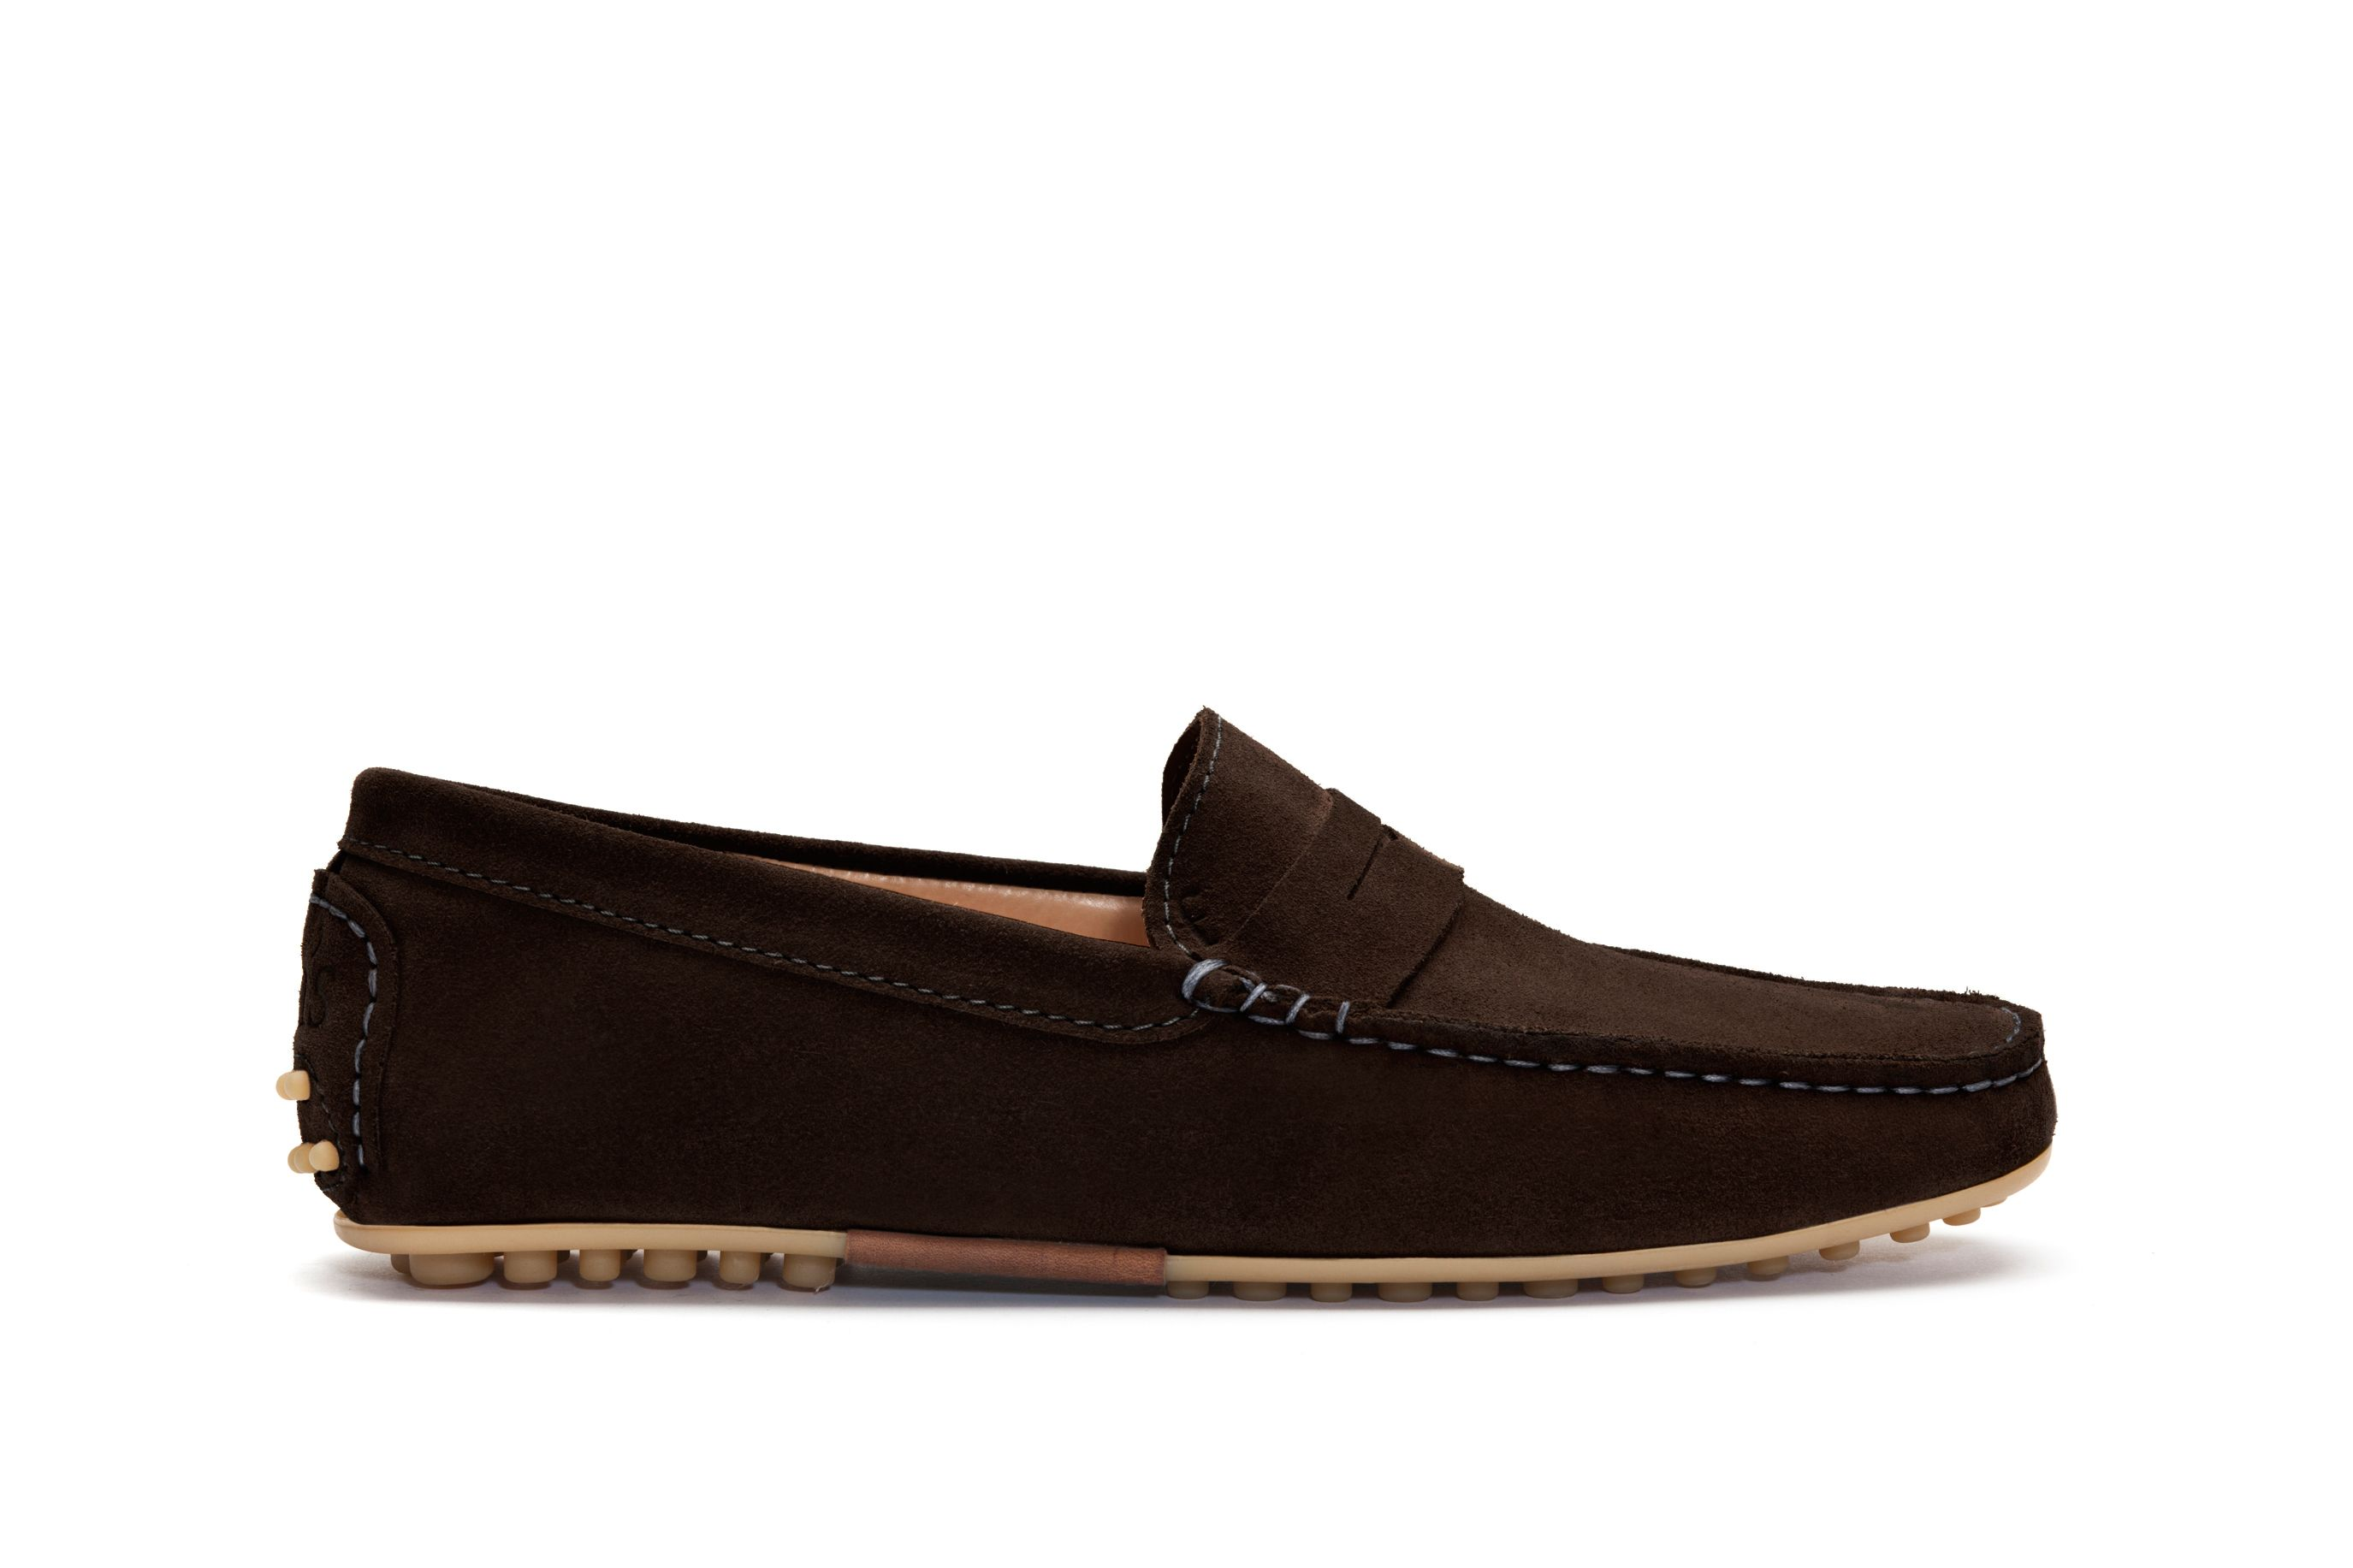 Bell Driver brown bobble sole moccasins